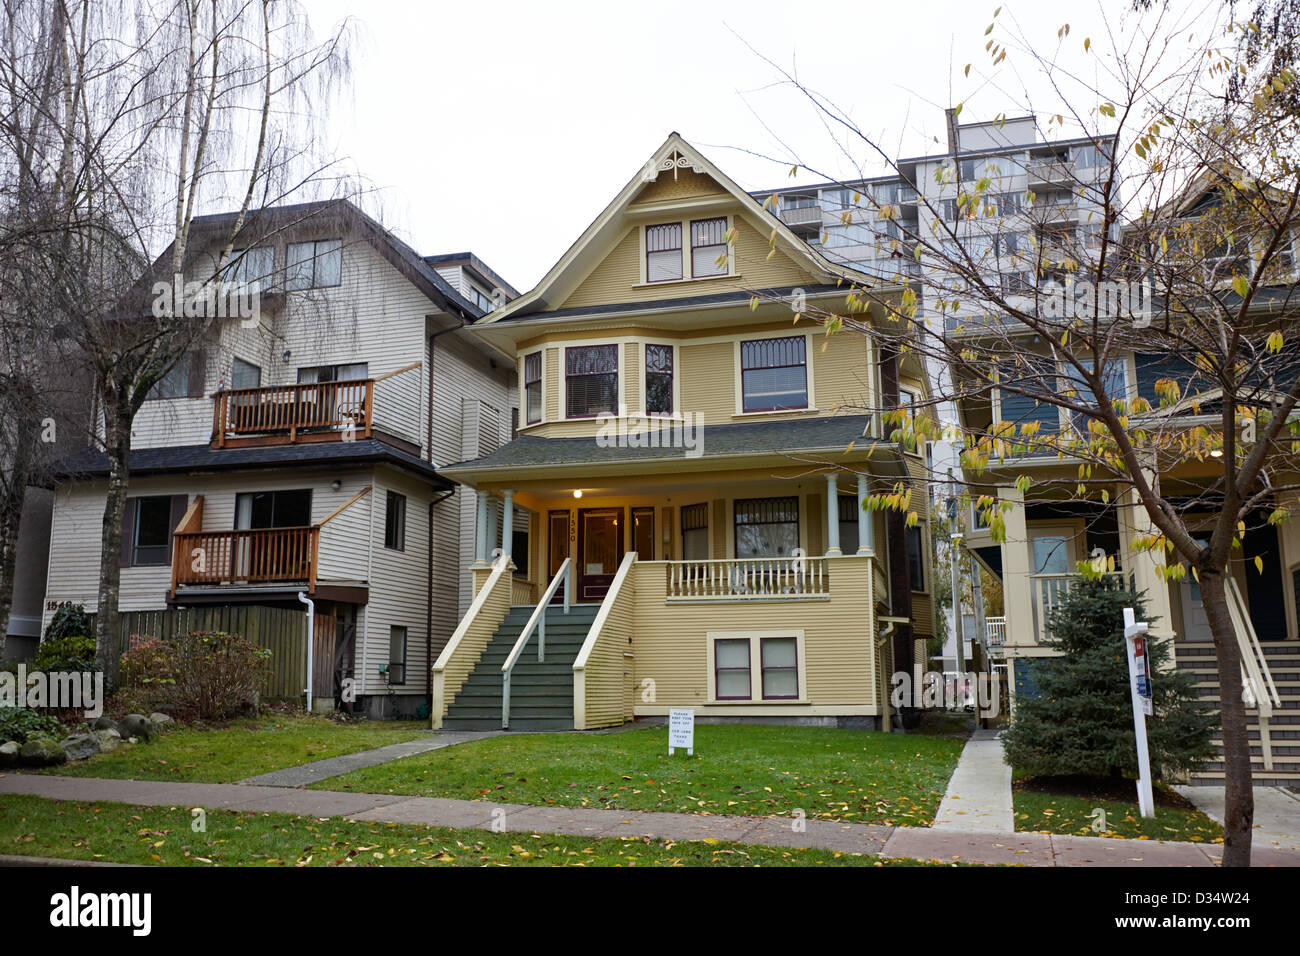 west end old wooden townhouses Vancouver BC Canada - Stock Image